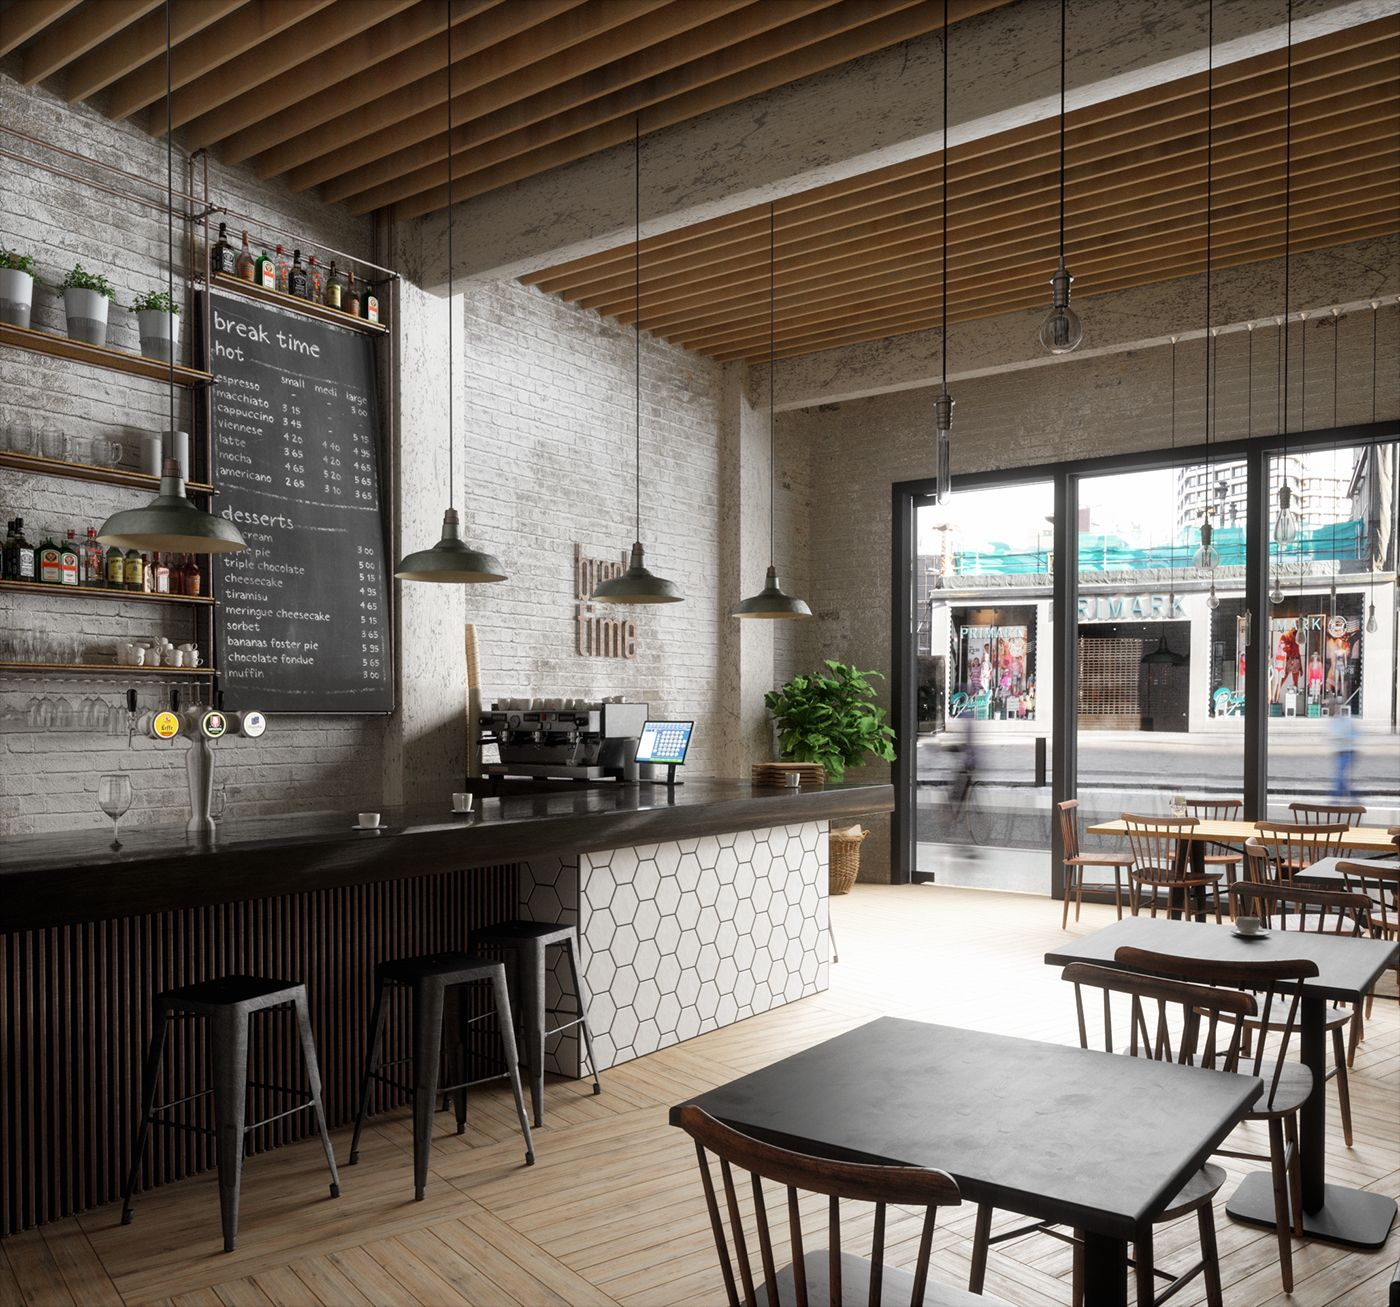 70 Coolest Coffee Shop Design Ideas: Break Time Café Interior Ceiling Wood Bar Tiles Lighting